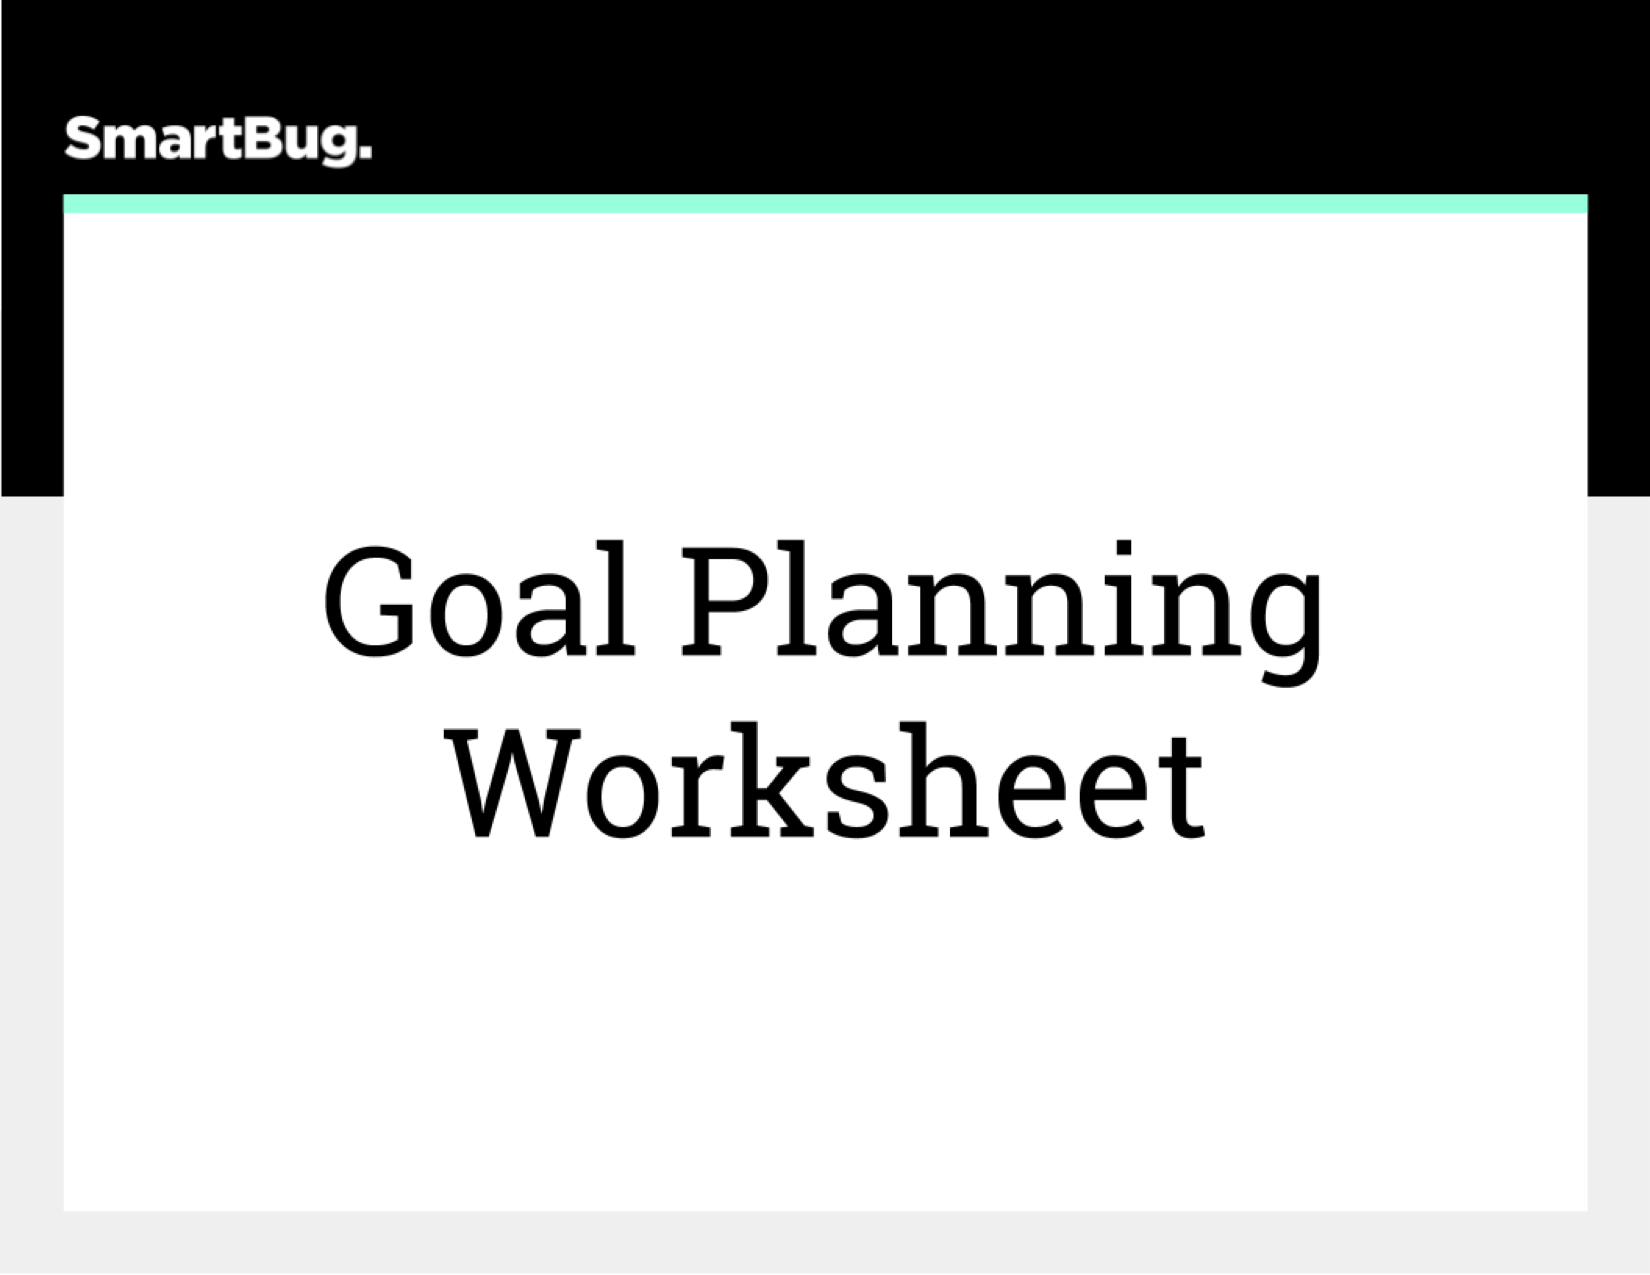 Goal Planning Worksheet (COVER)